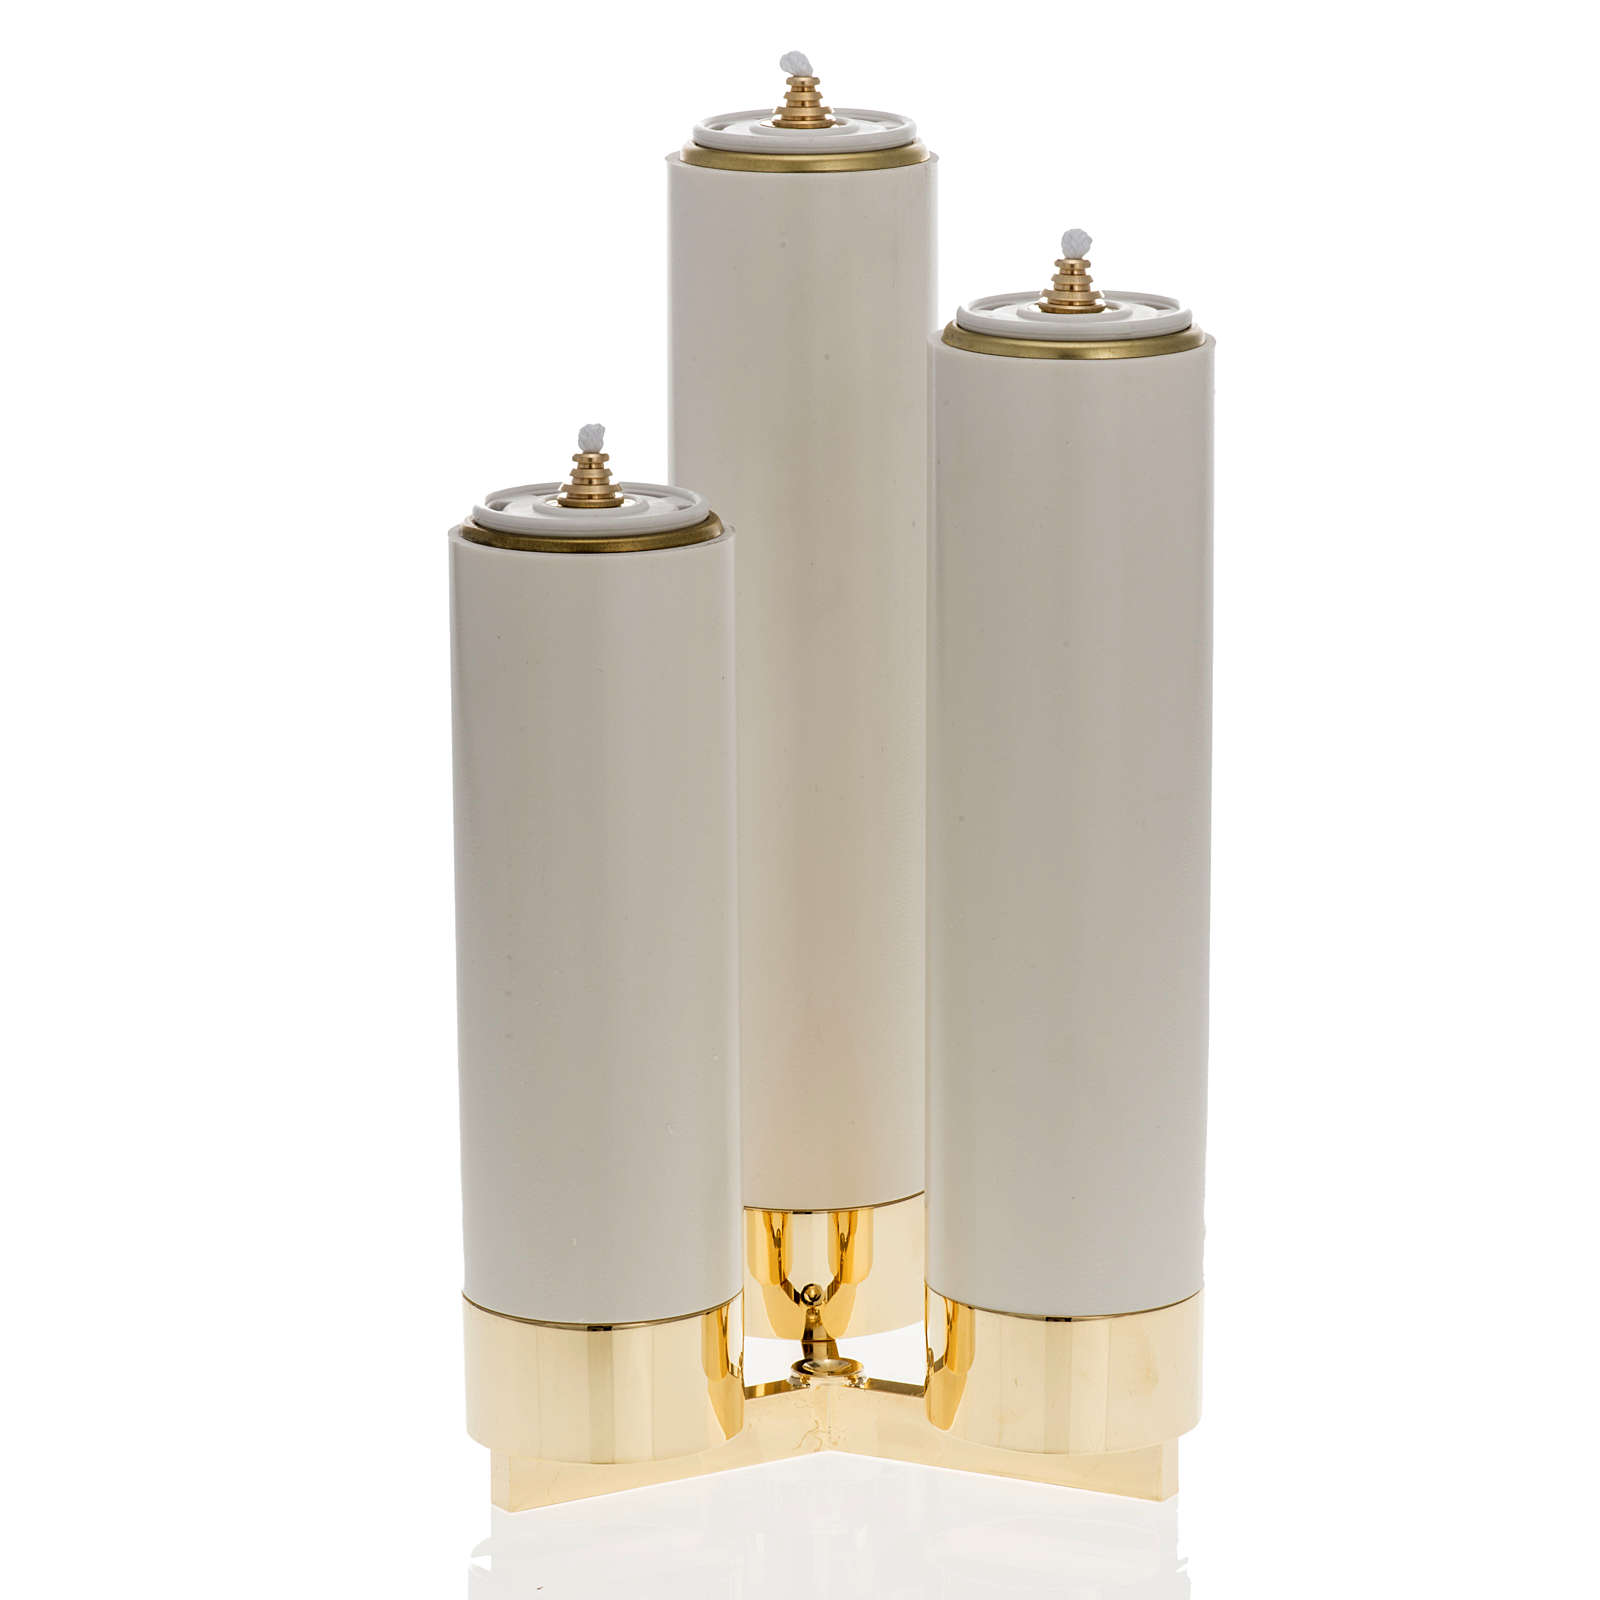 Candle holder with 3 branches, complete with fake candles 4